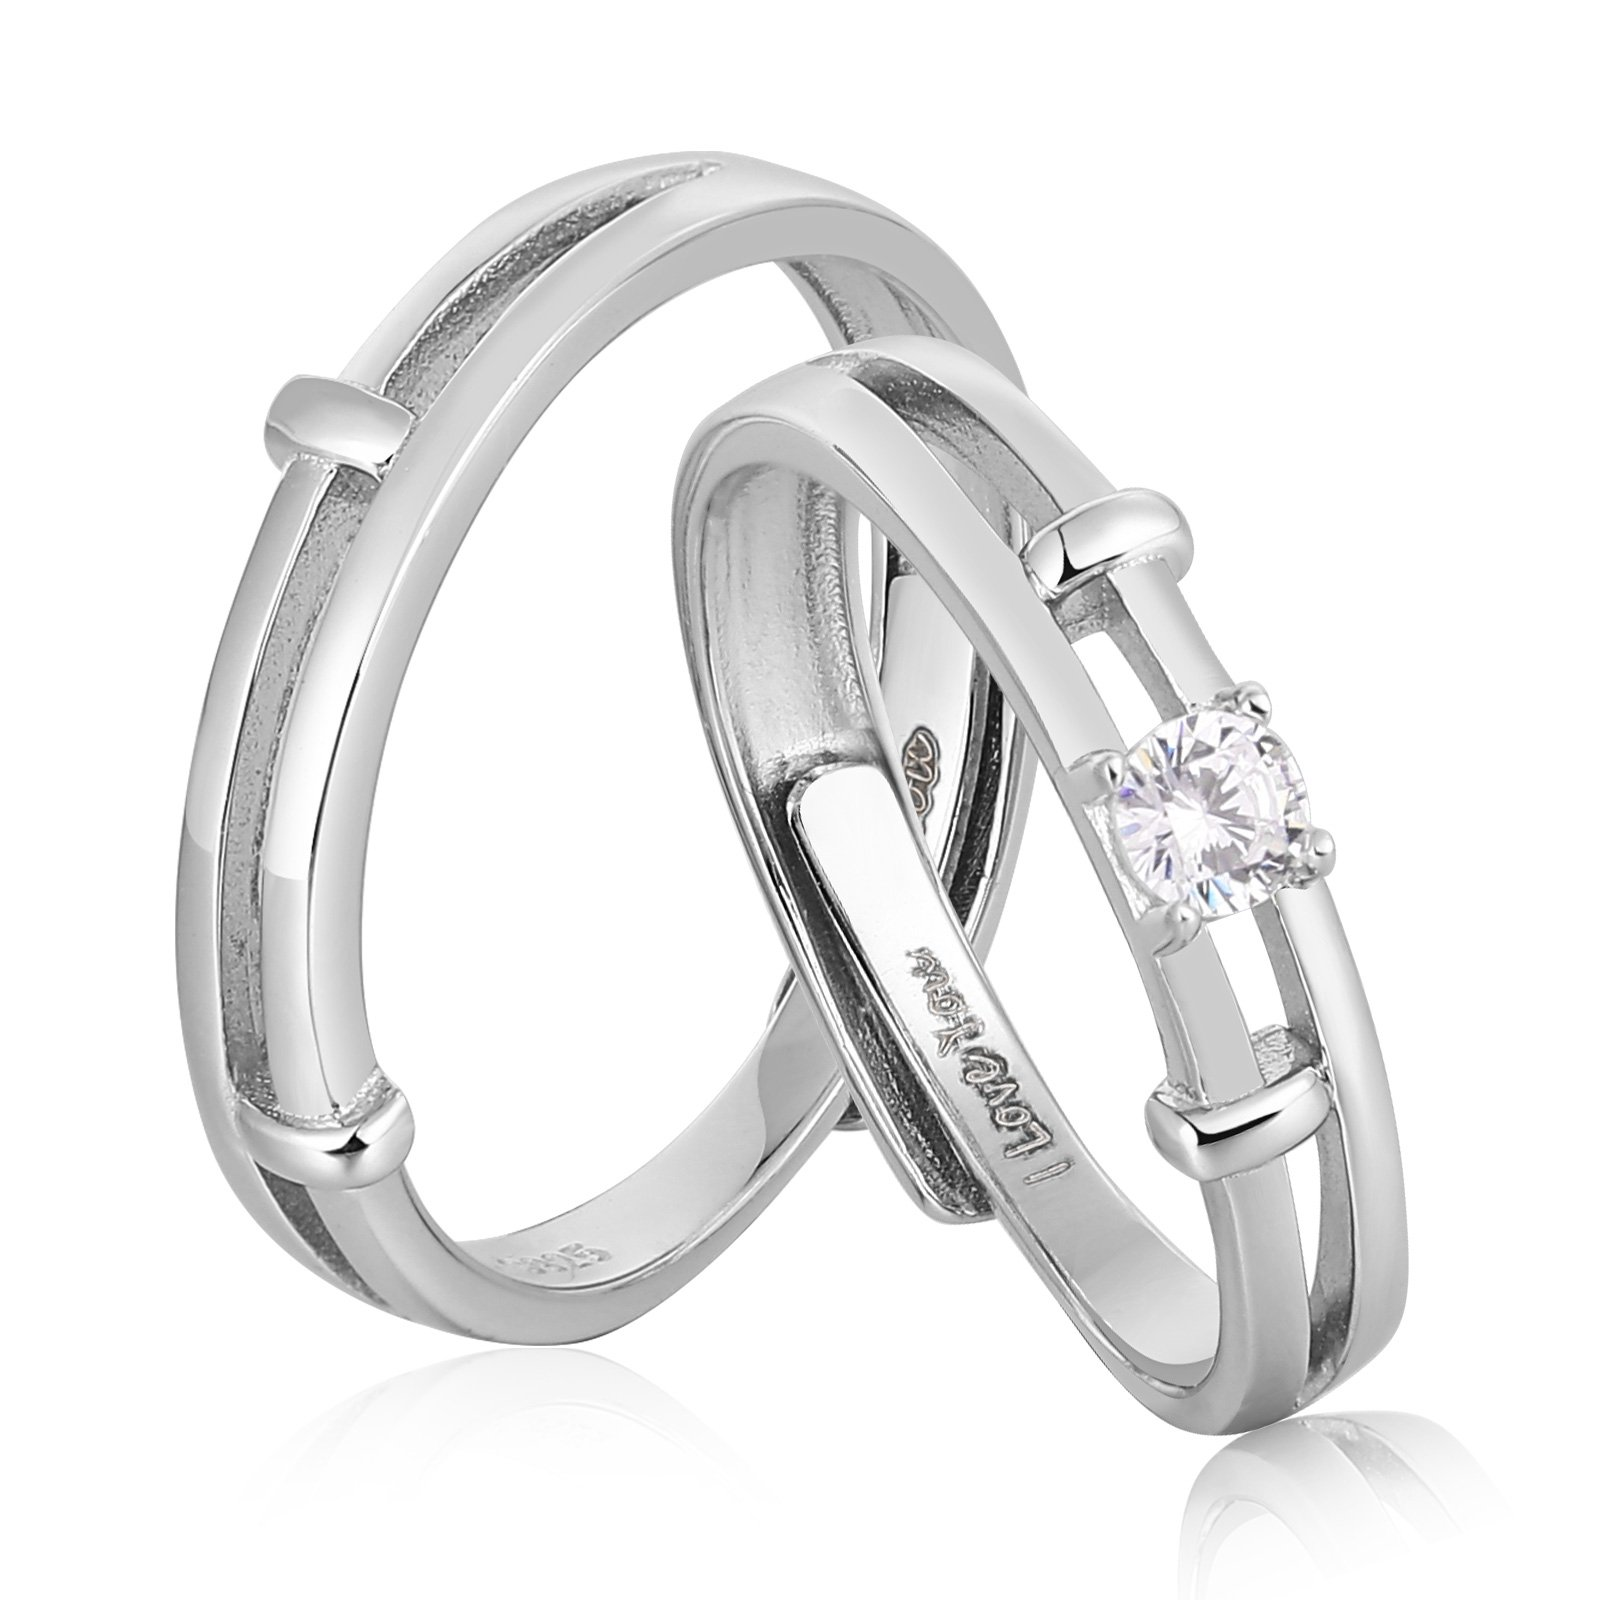 AnaZoz Endless Love S925 Silver Rings Adjustable Ring Cubic Zirconia Wedding Ring Promise Ring Couples Ring